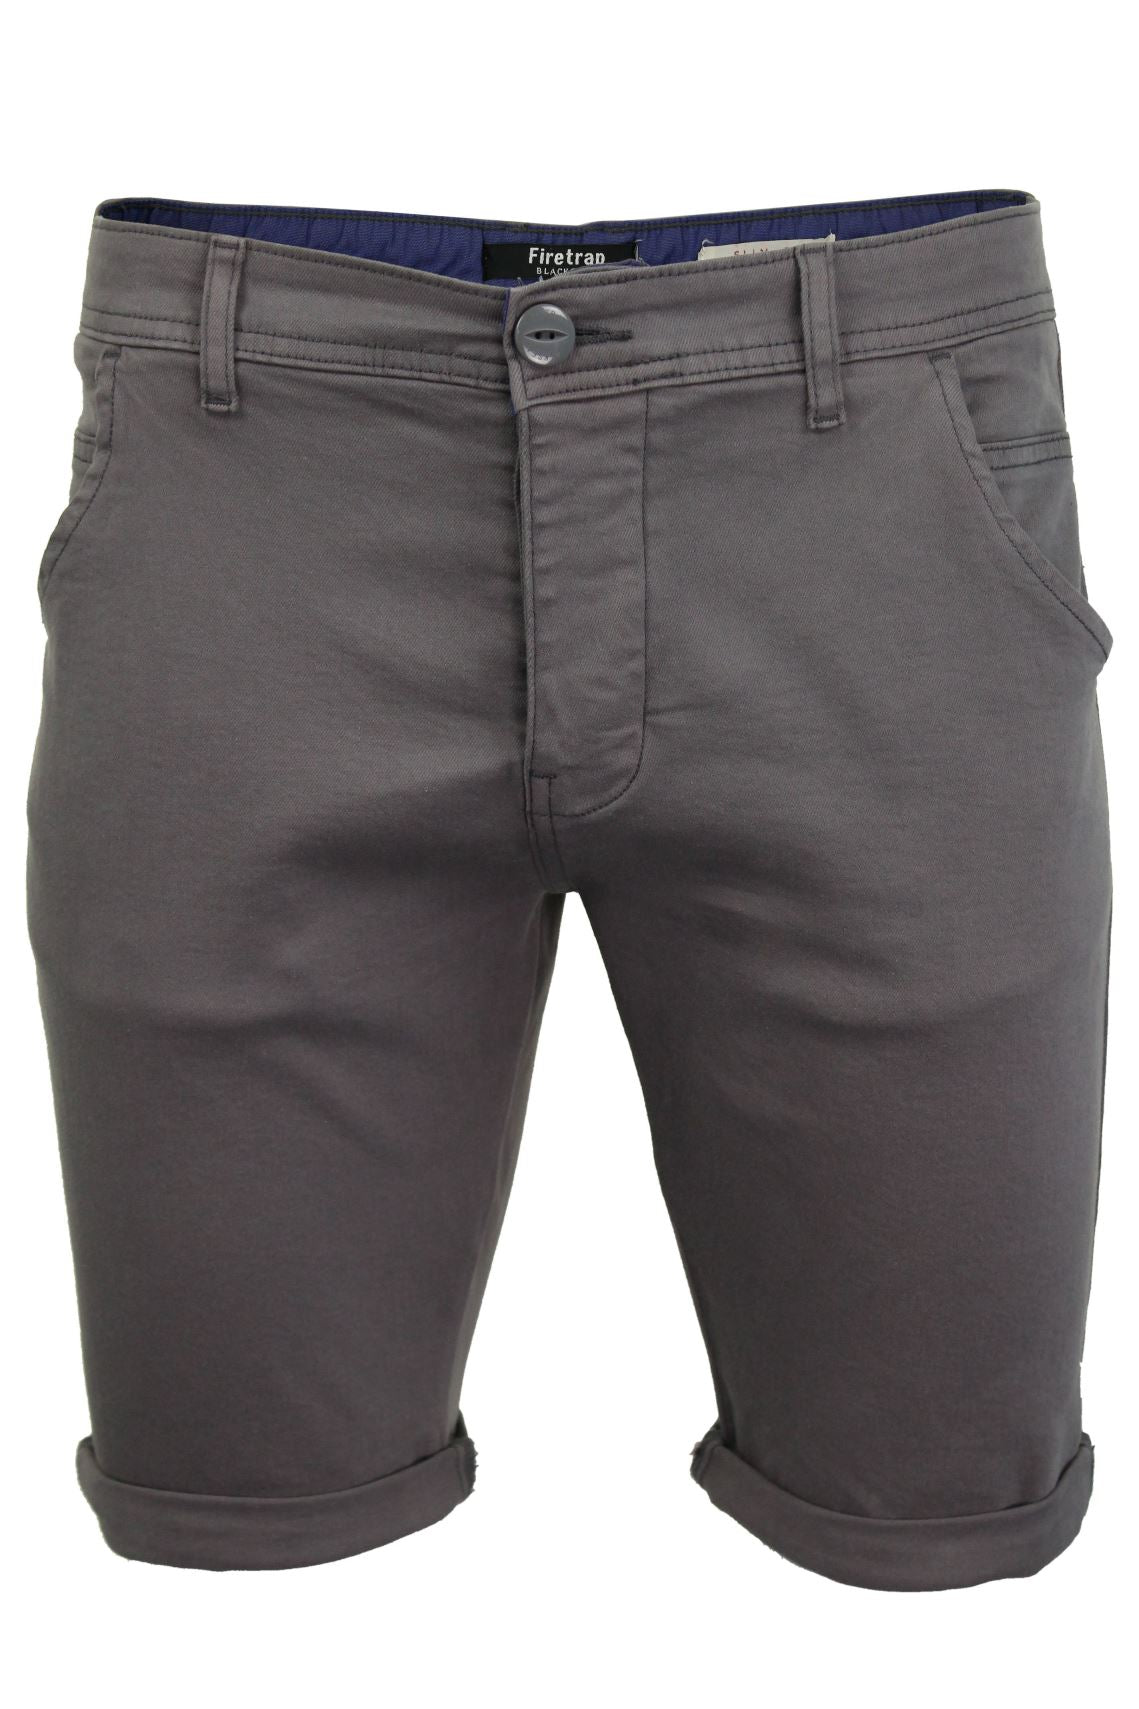 Mens Chino Shorts by Firetrap 'Solvay' Cotton Twill-Main Image